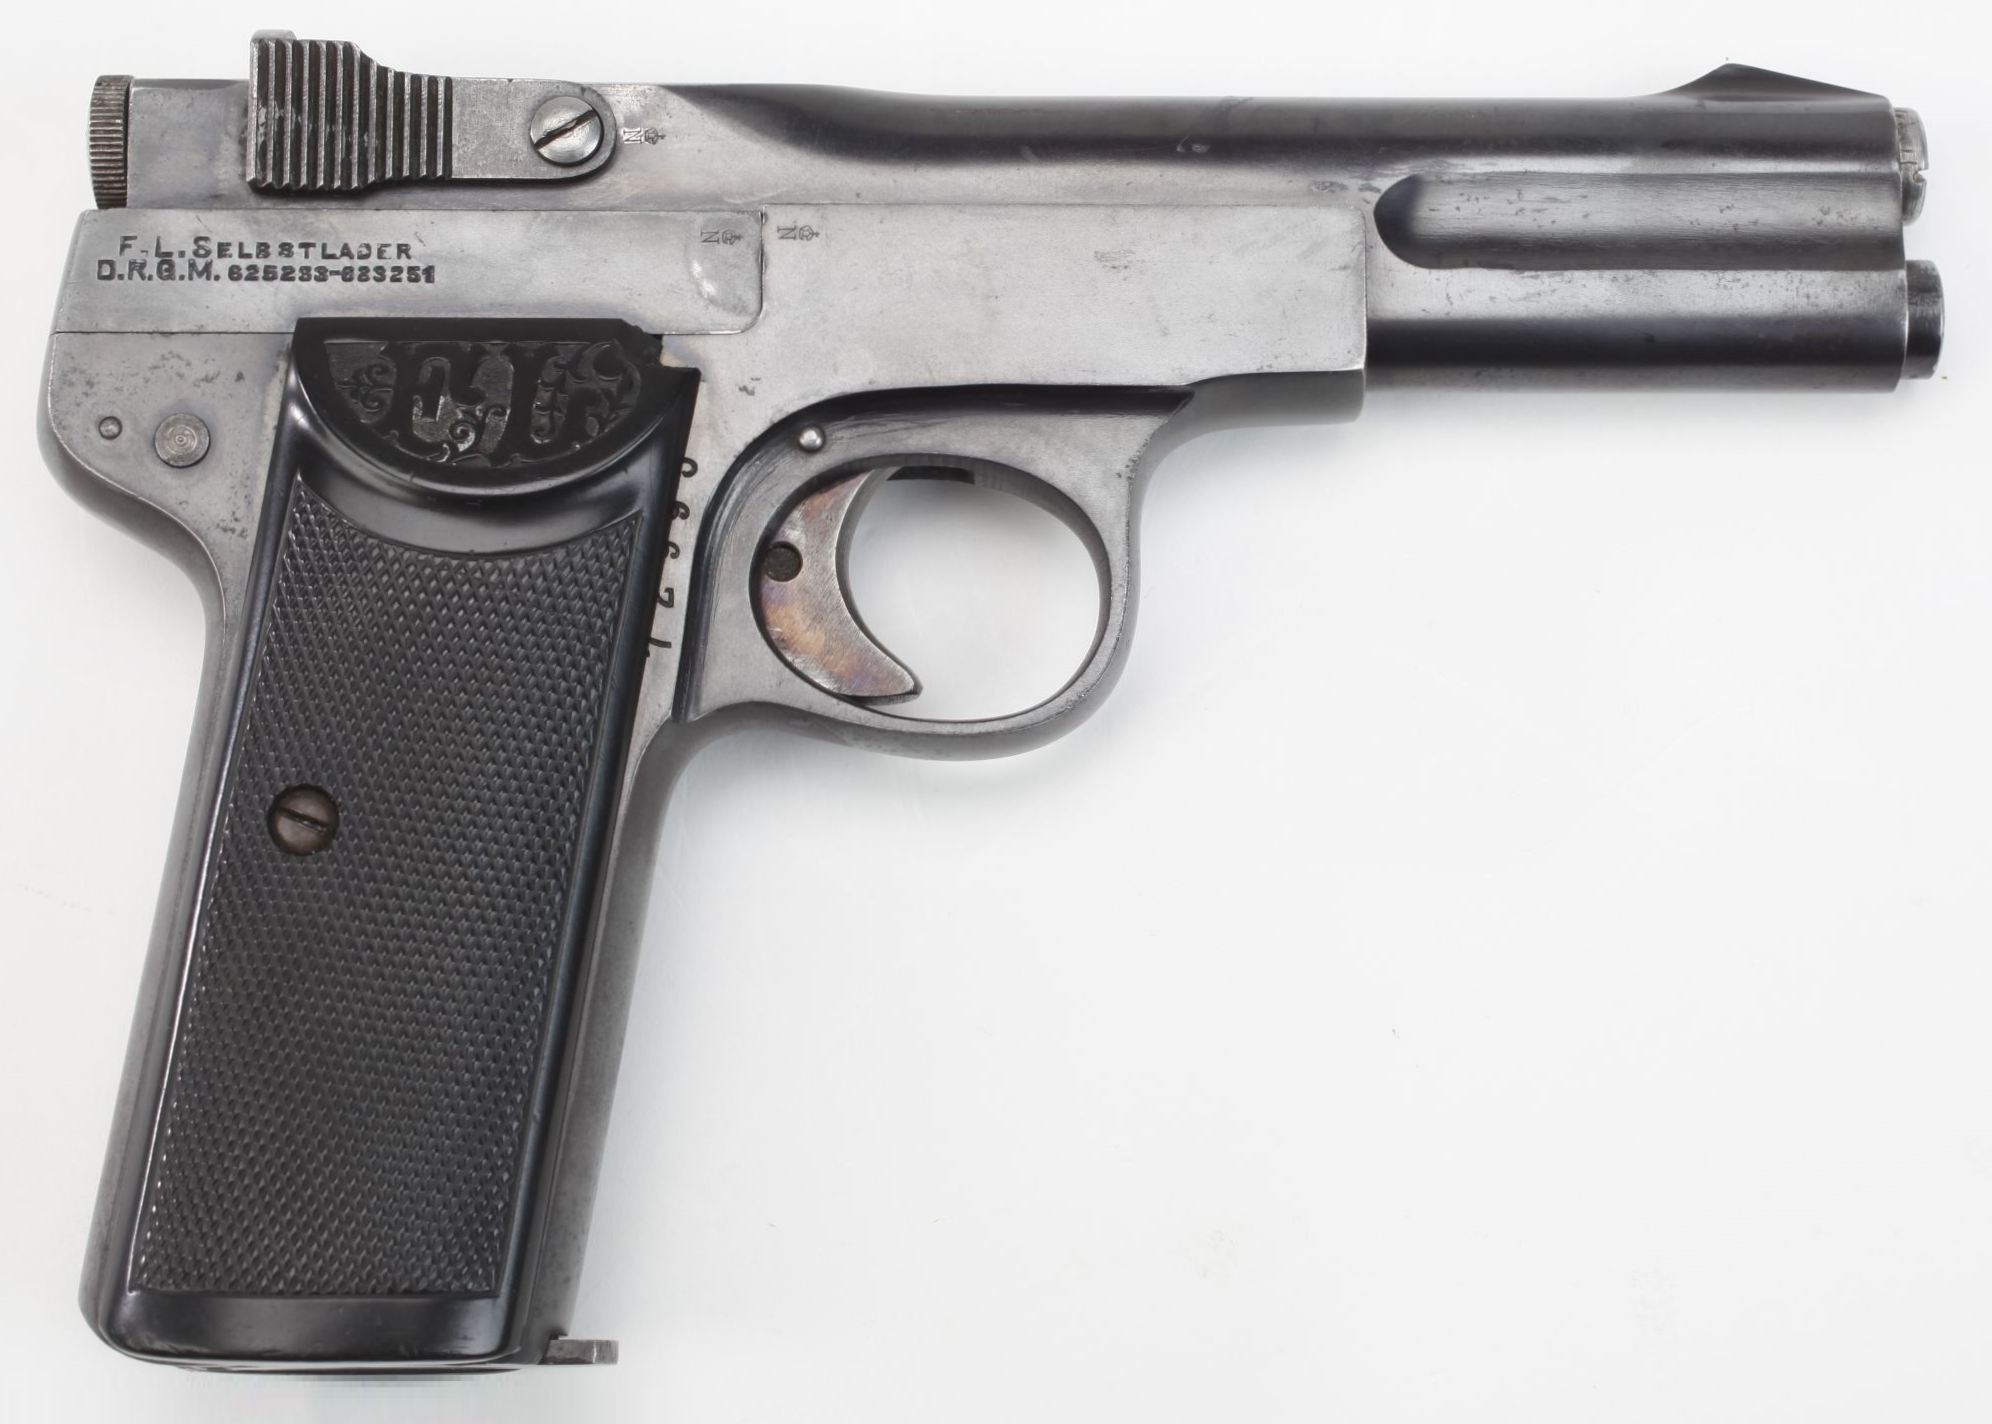 """Manufacturer: Friedrich Langenhan Model: Selbstlader (""""Self-loader"""") Finish: Blued Construction: Carbon Steel Action: Single-action Operation: Blowback, semi-automatic Type: Pistol Caliber: .32 ACP (7.65×17mm) Capacity: 7+1 Year(s) Produced: 1915-???? Quantity Produced: ?"""